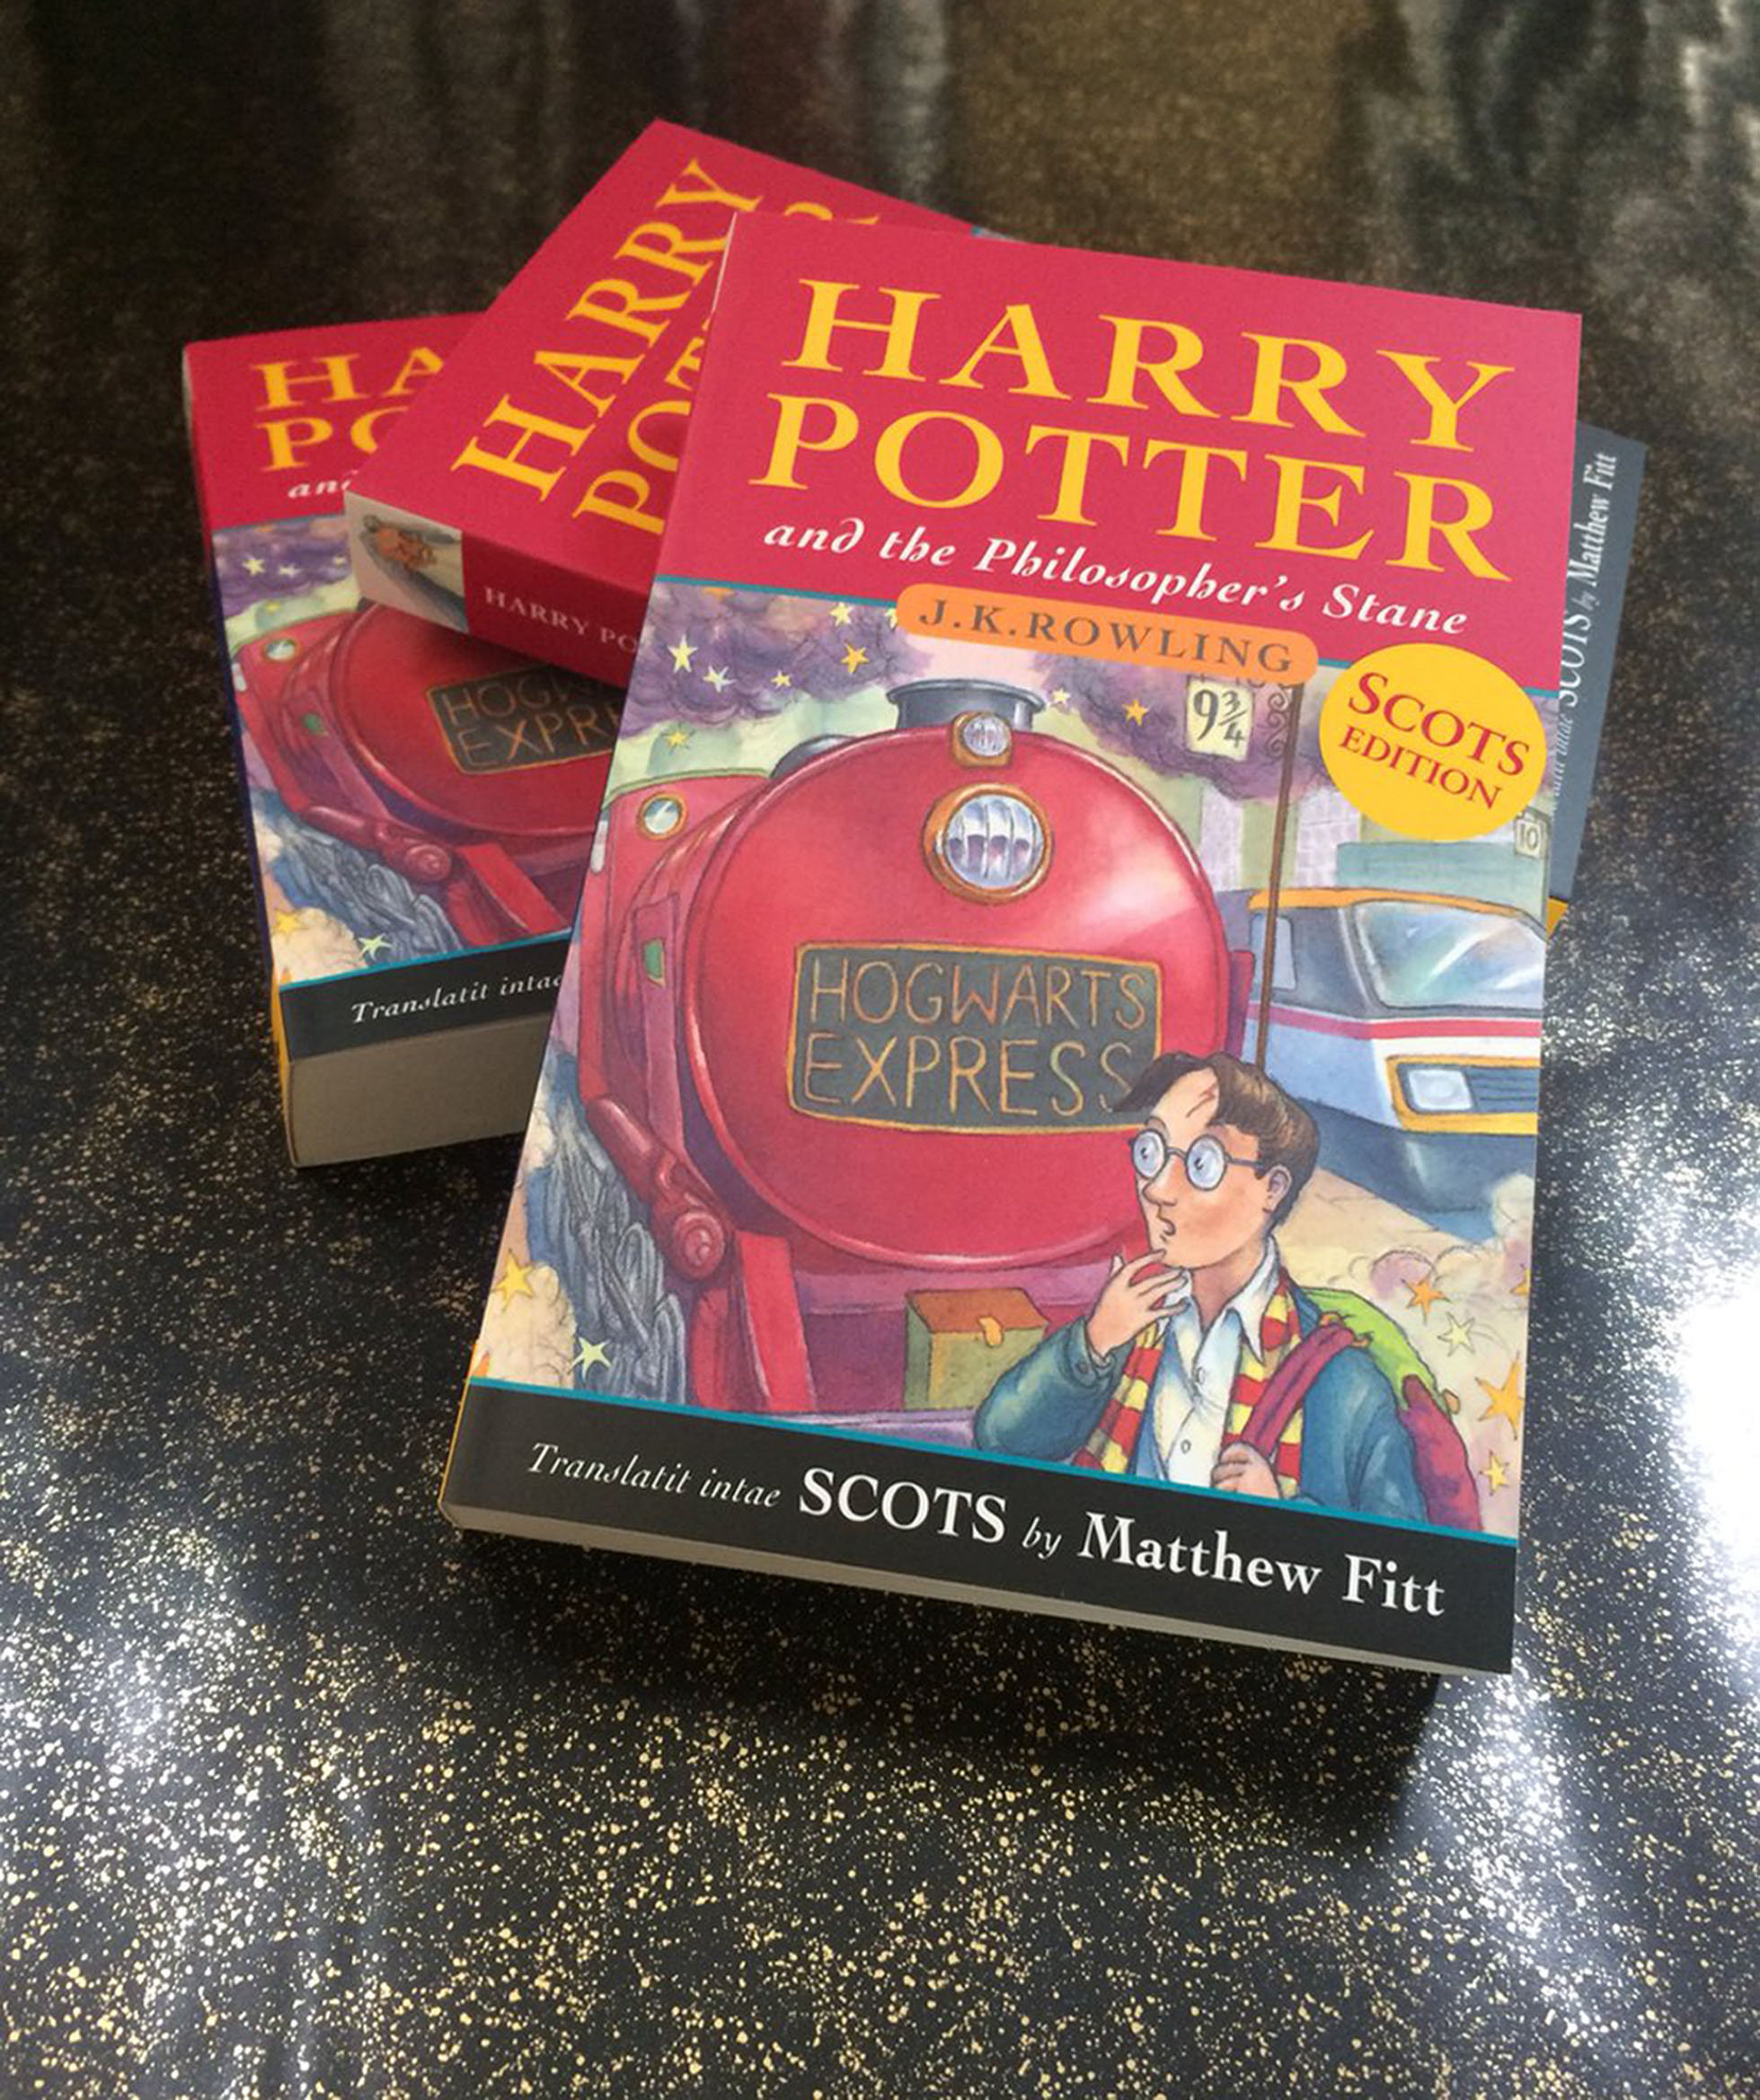 The first book in the Harry Potter series has had a Scottish treatment and has been translated into Scots..Harry Potter and the Philosopher's Stane marks the 20th anniversary of the first publication of the boy wizard's adventures..Harry Potter ha